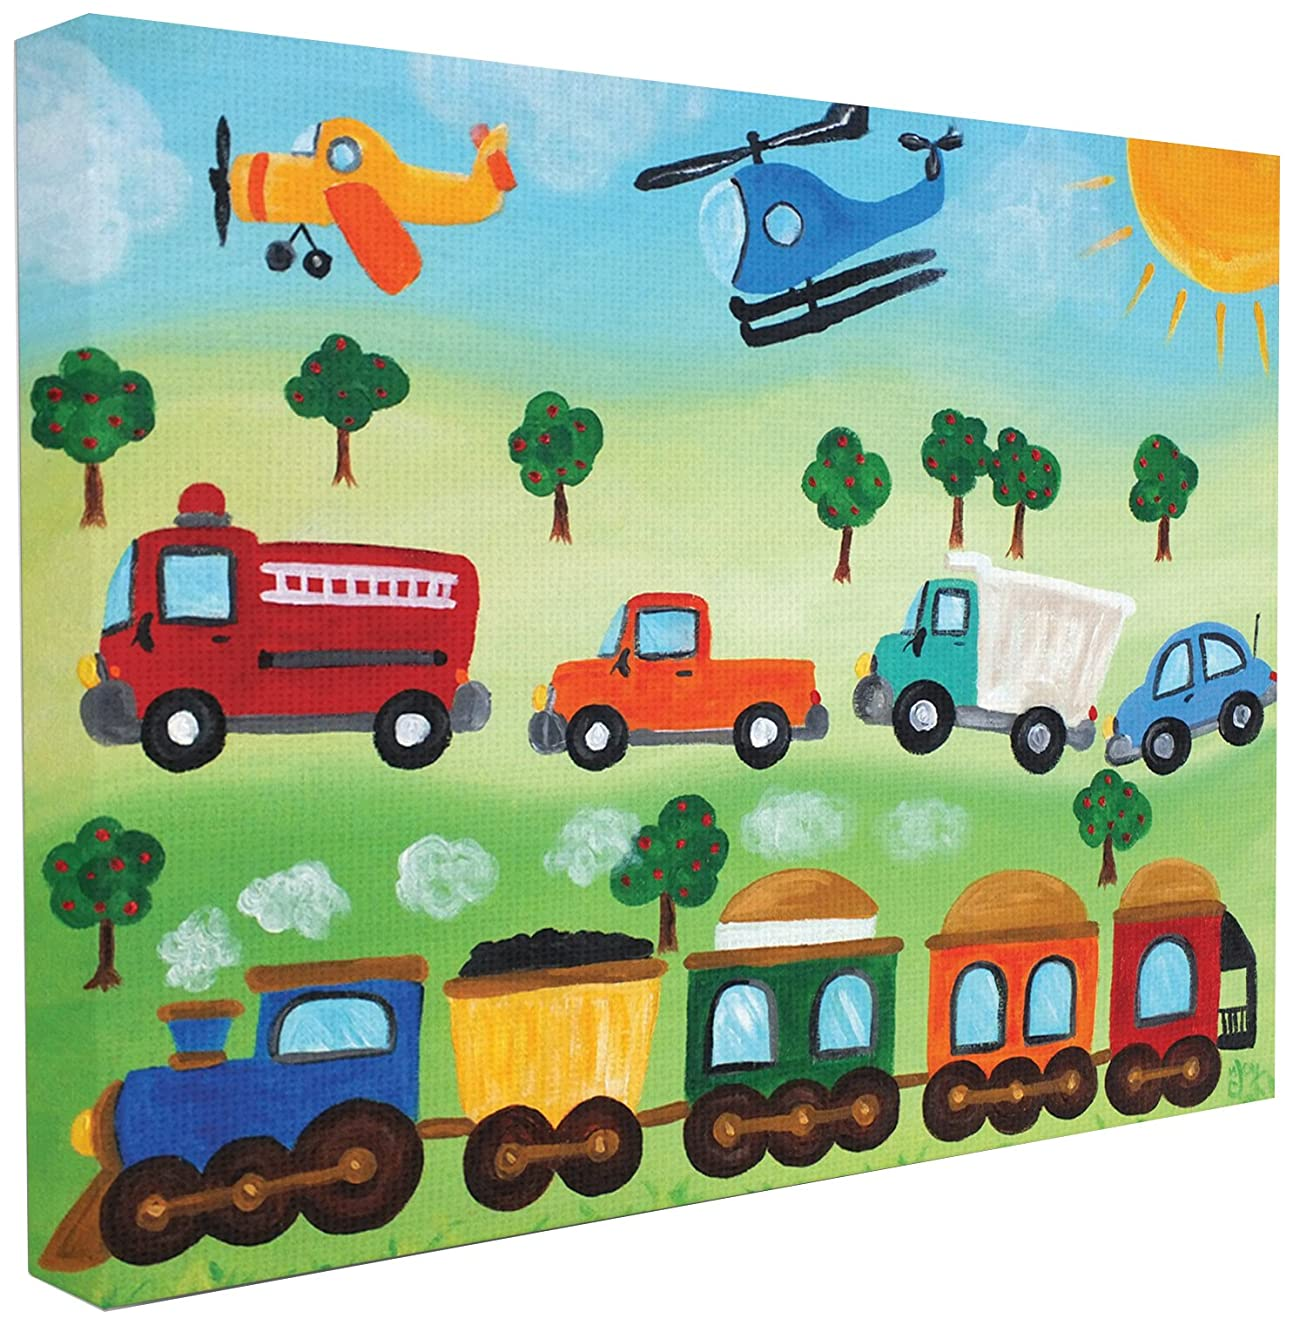 The Kids Room by Stupell Planes, Trains, and Automobiles Wall Plaque, 16 x 20